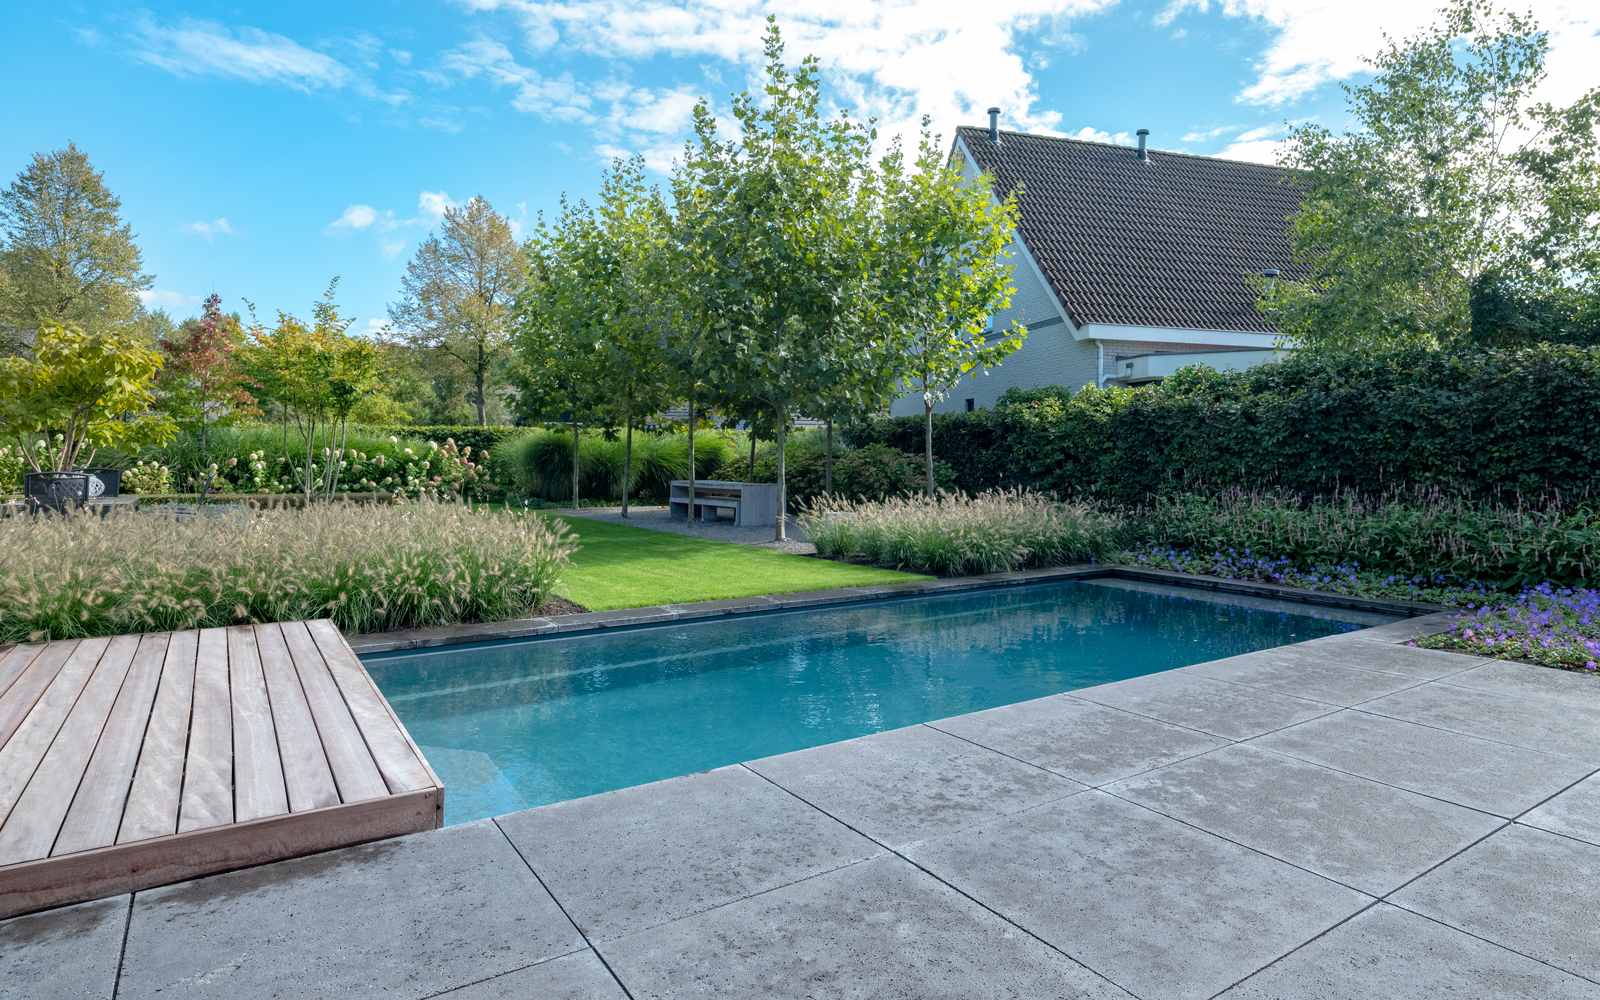 compass pools, the art of living